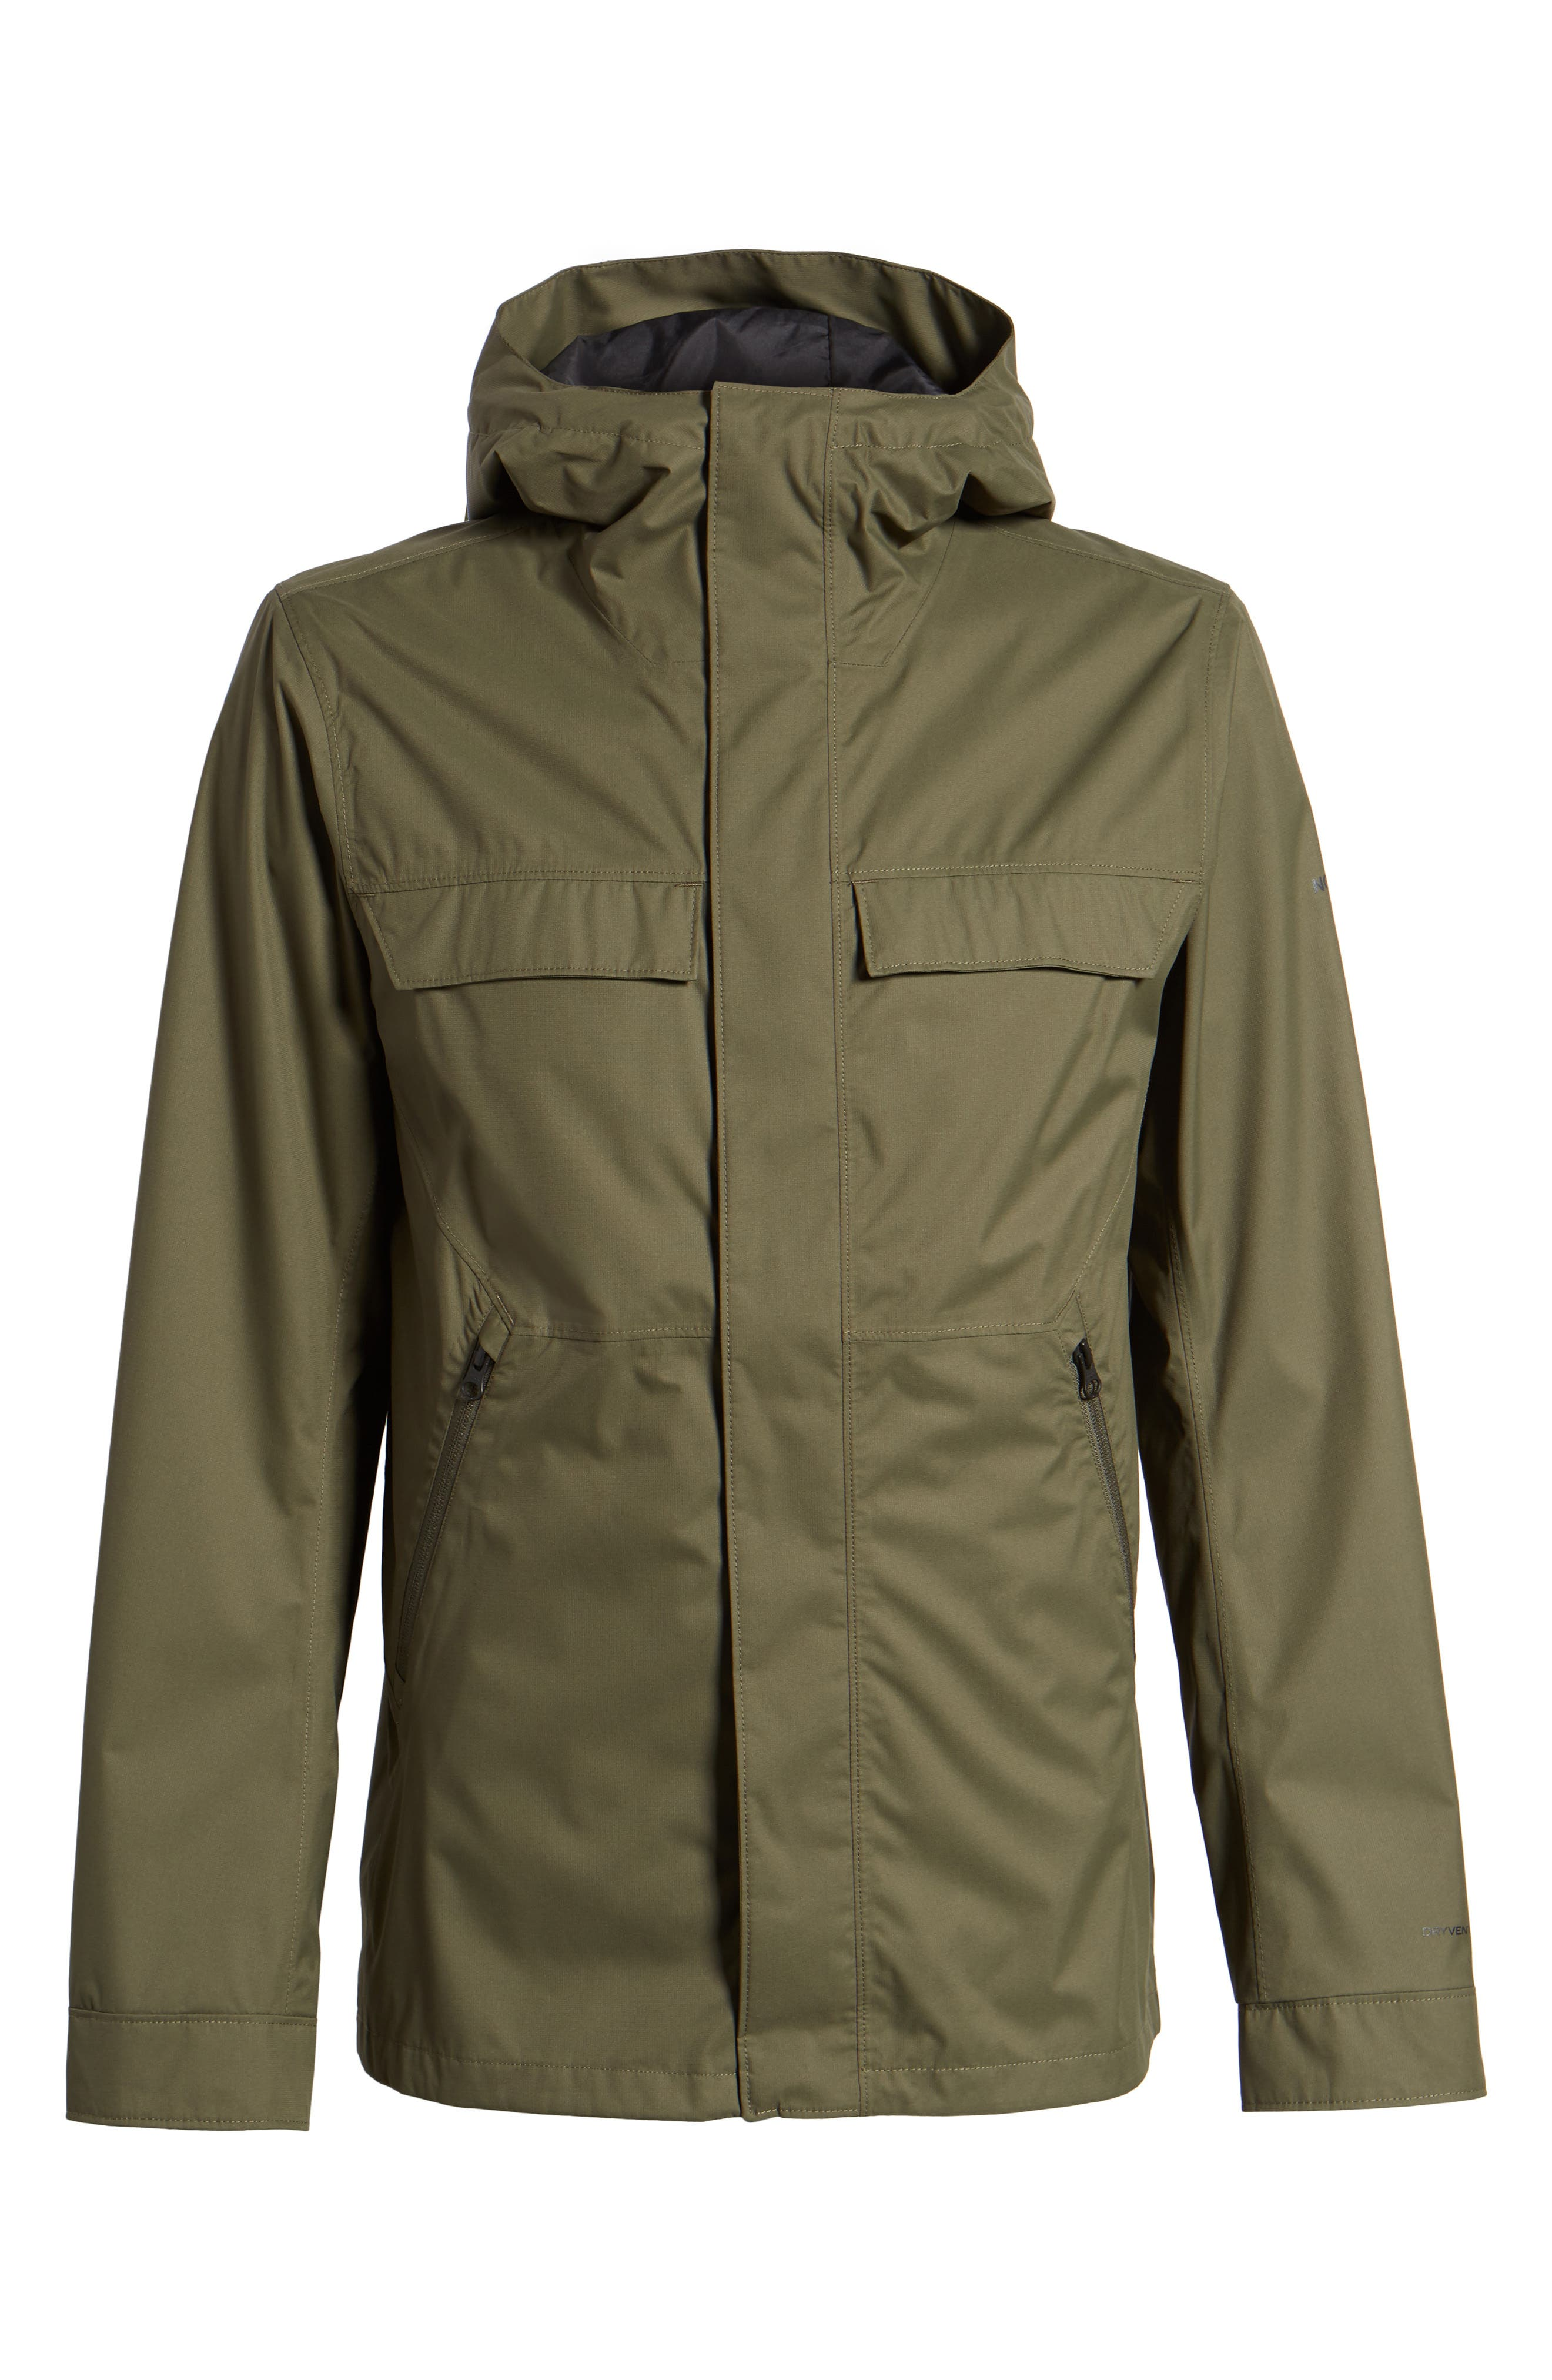 Jenison II Insulated Waterproof Jacket,                             Alternate thumbnail 6, color,                             New Taupe Green